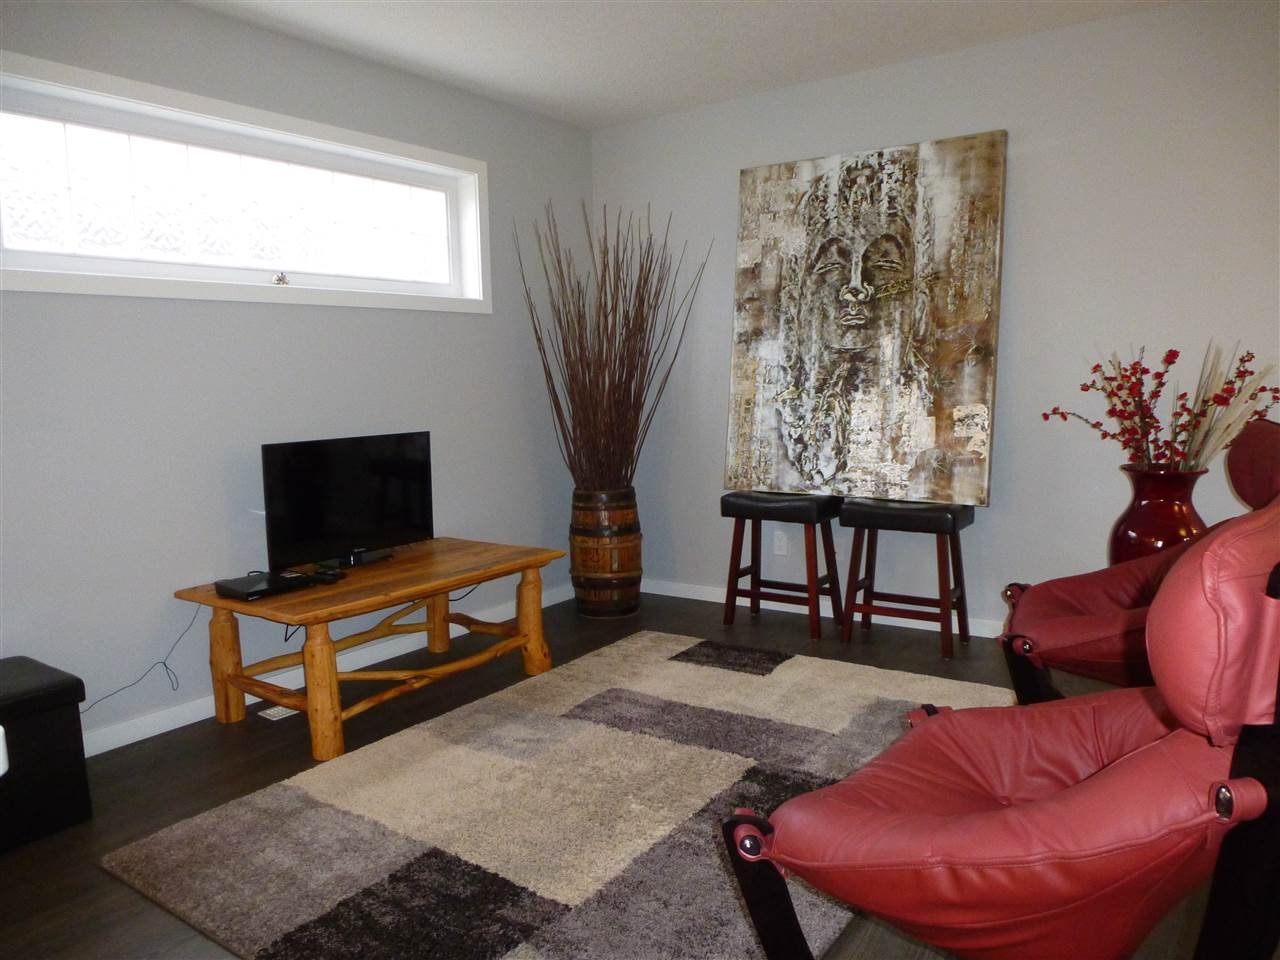 Photo 6: 14835 103 Avenue in Edmonton: Zone 21 House Half Duplex for sale : MLS(r) # E4057701